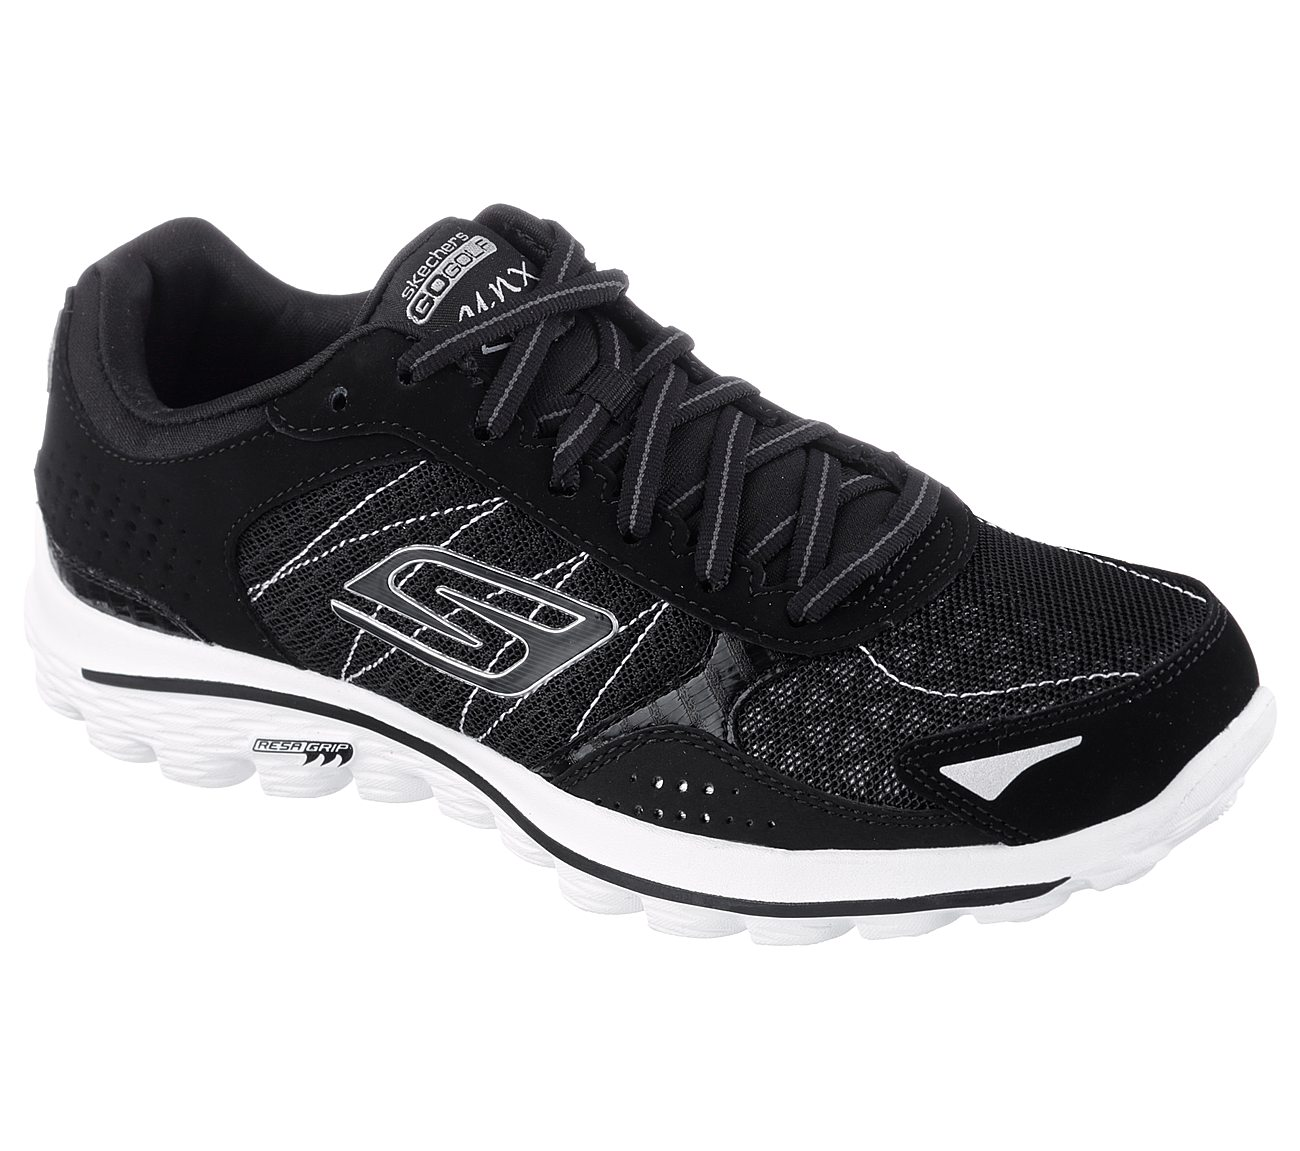 Skechers GOwalk 2 Golf Lynx